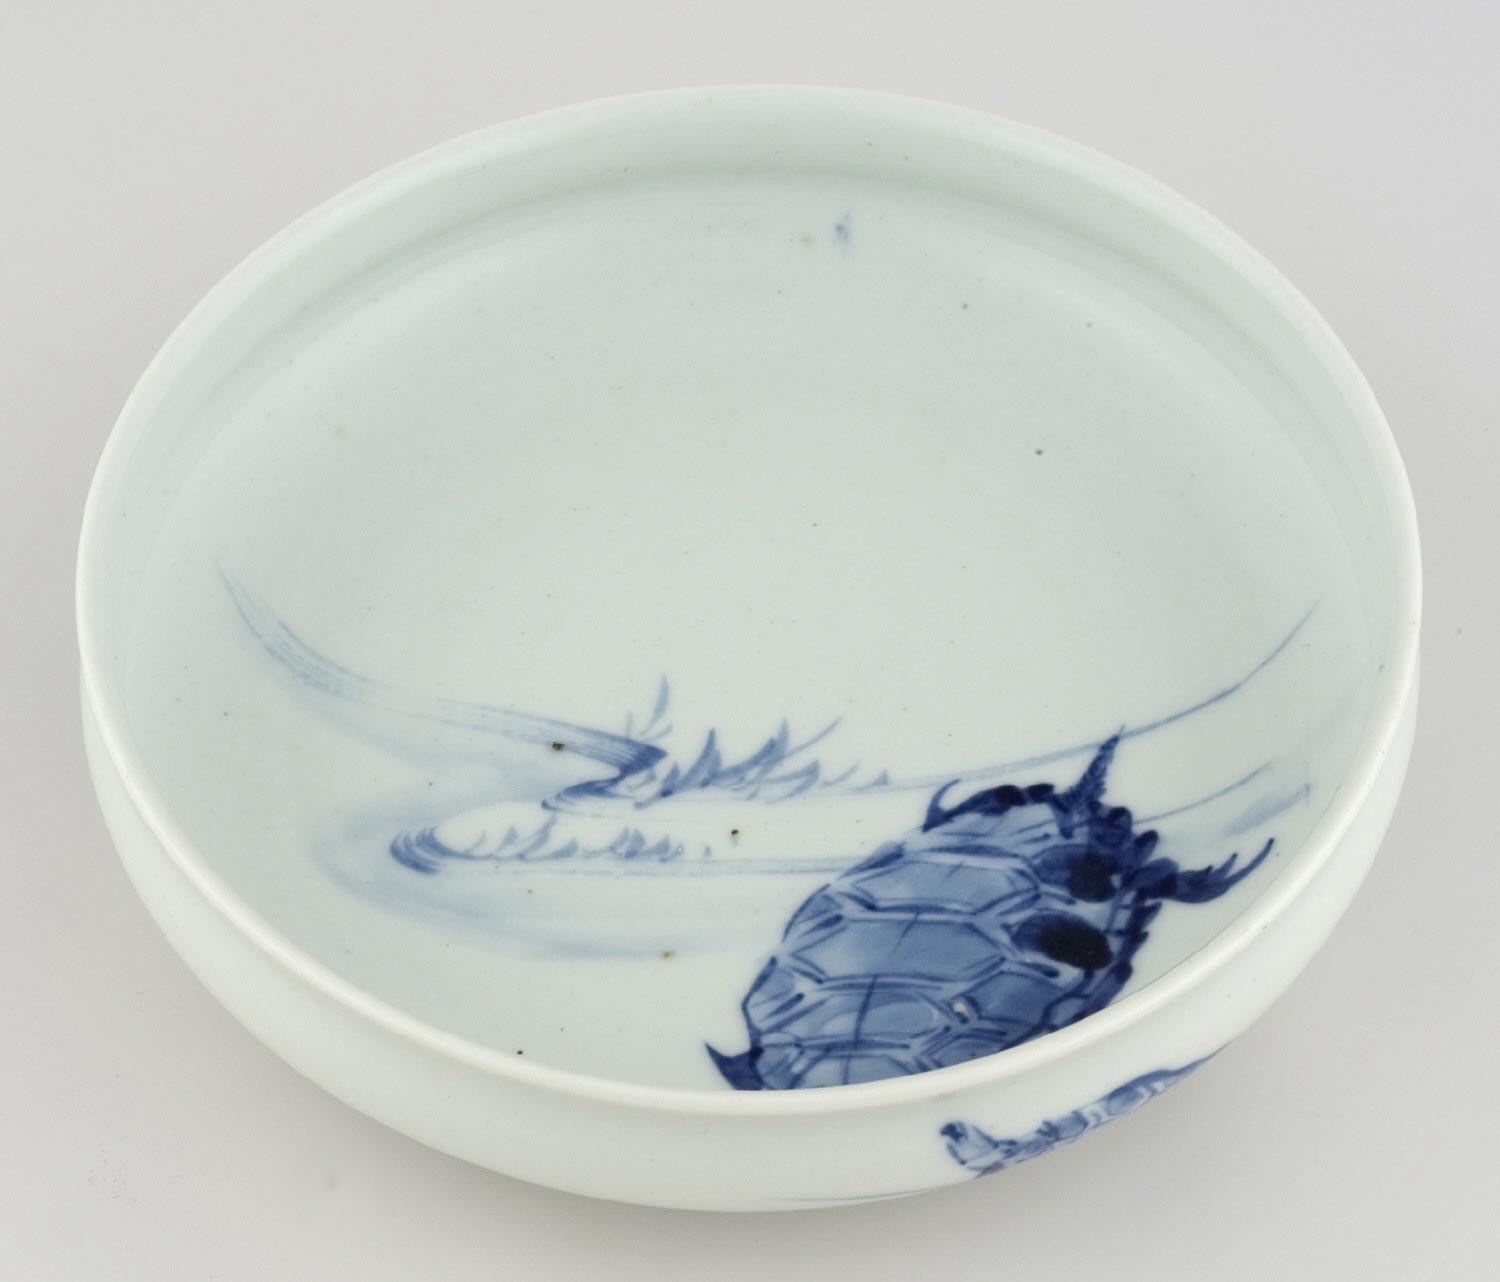 Dish with Design of Turtles